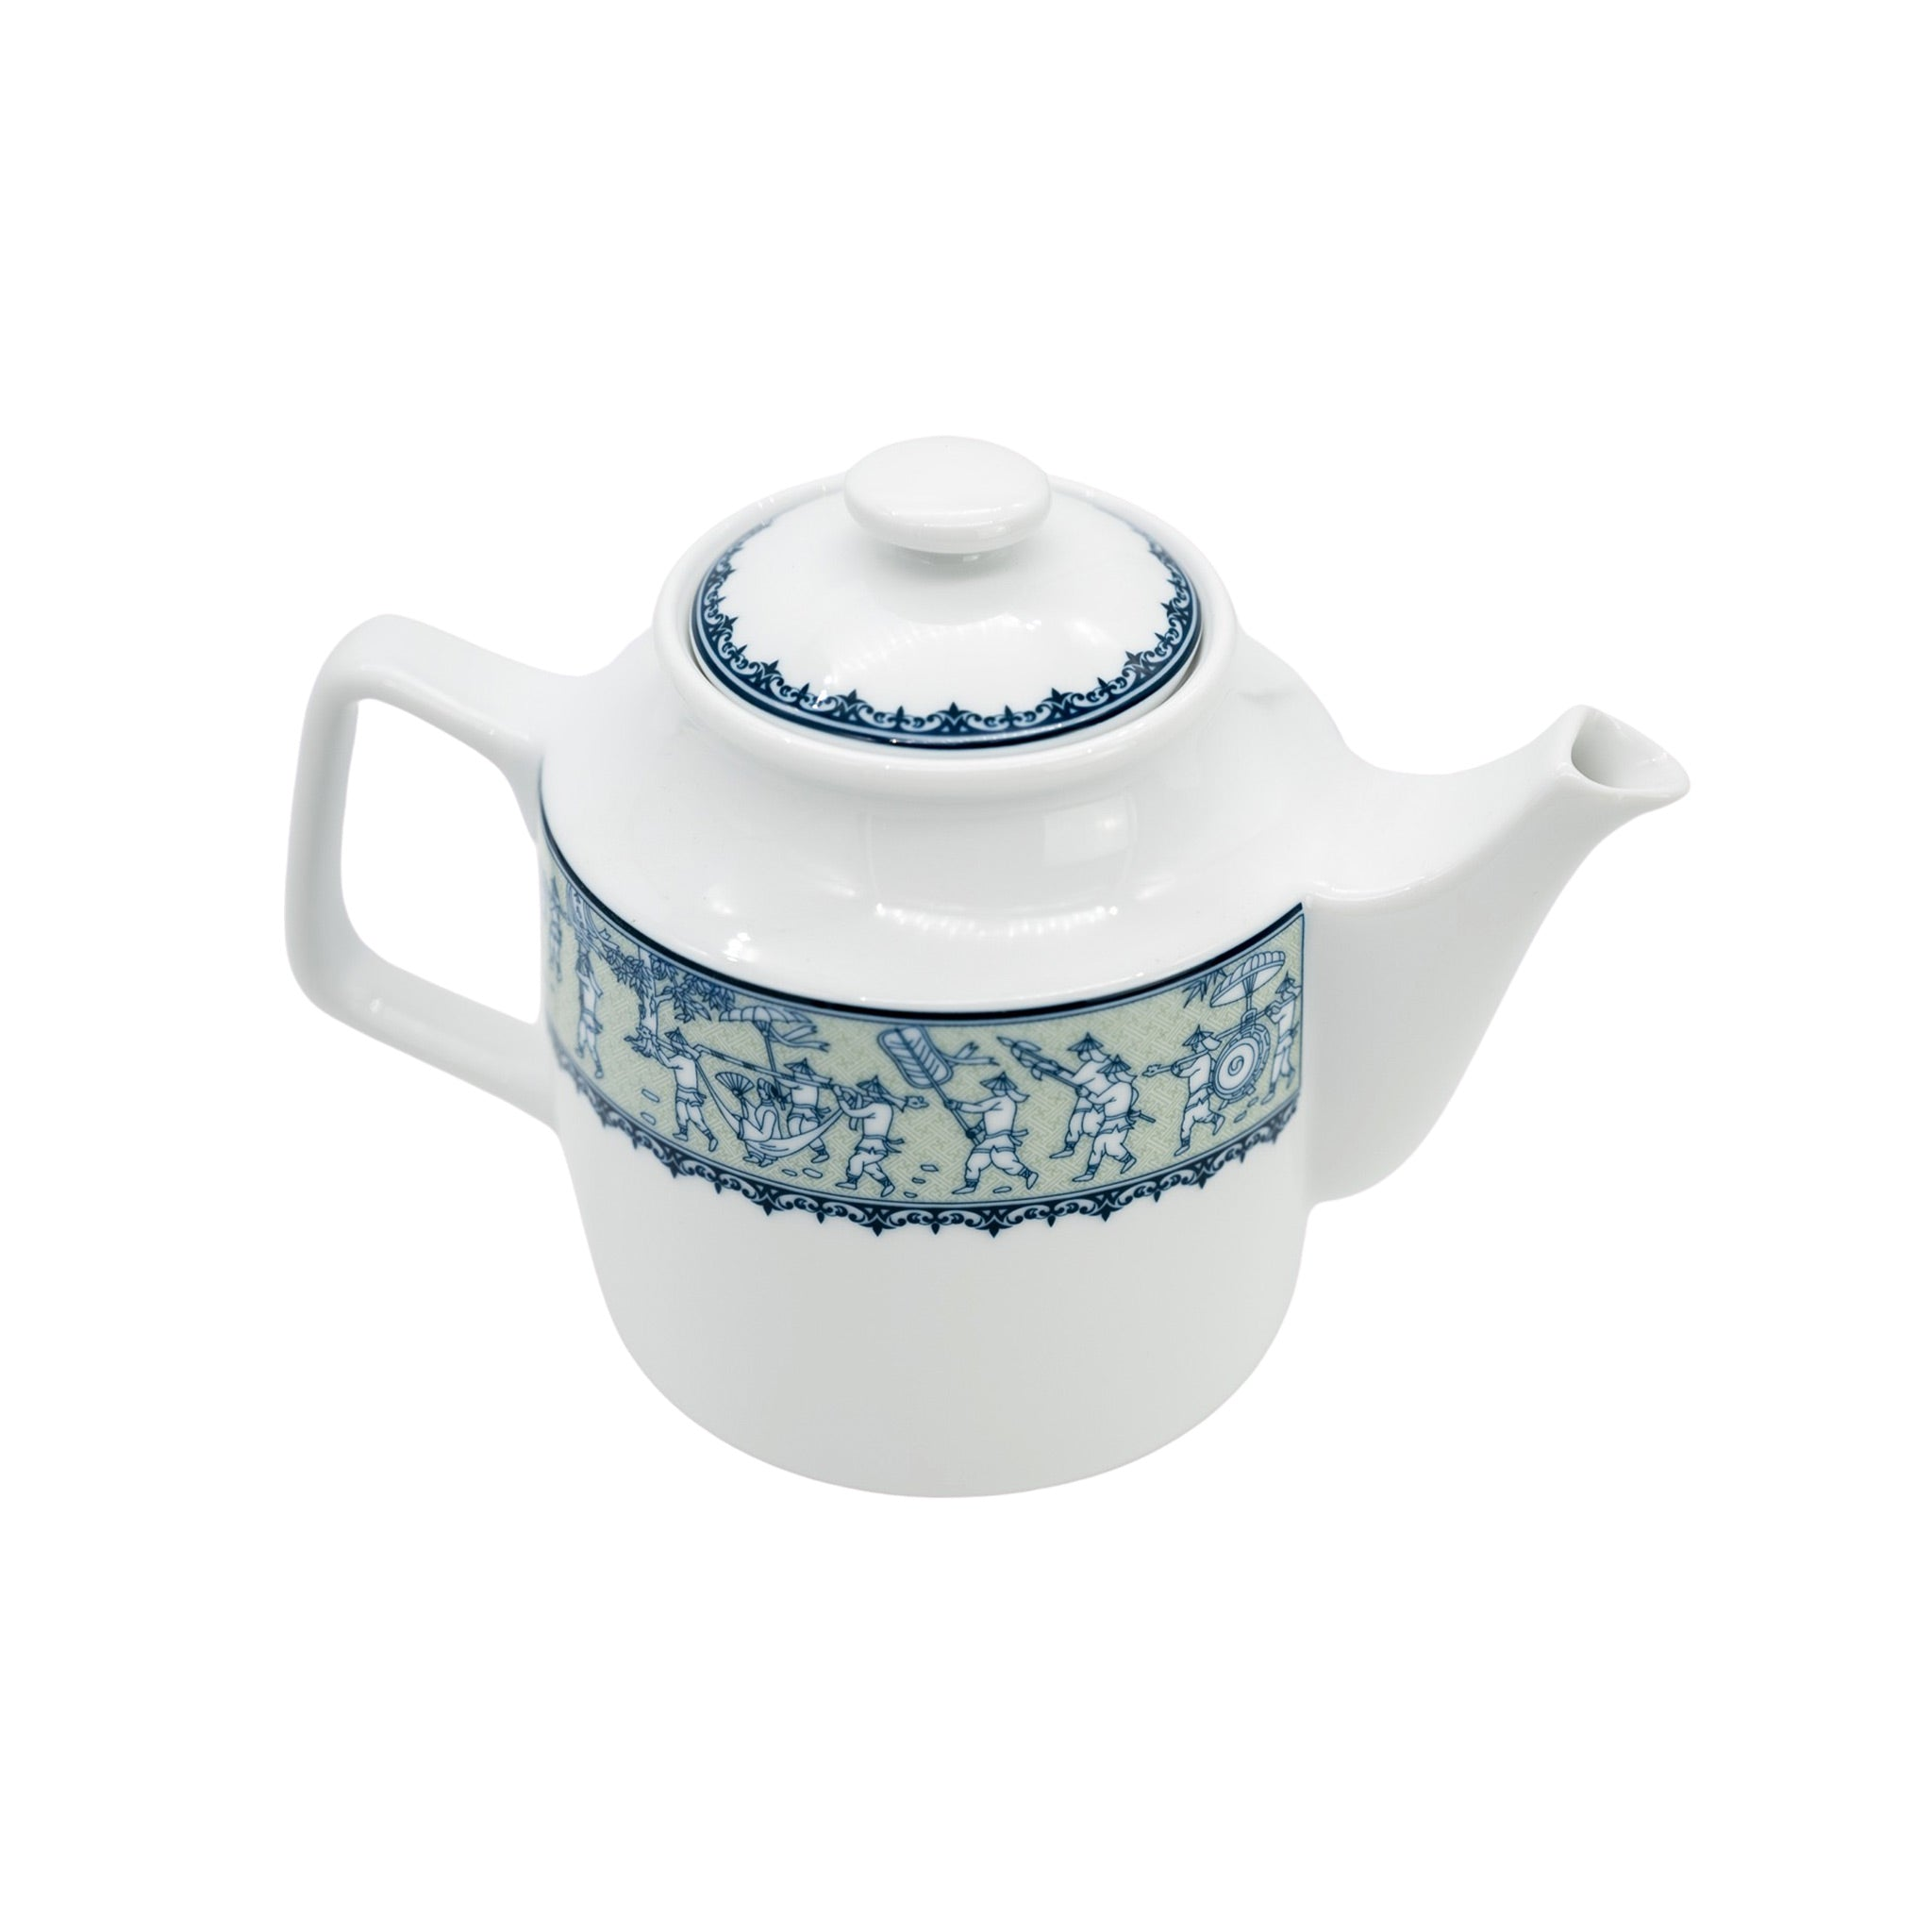 Jasmine Winner Artisan Tea Set 0.7L (Small Set)